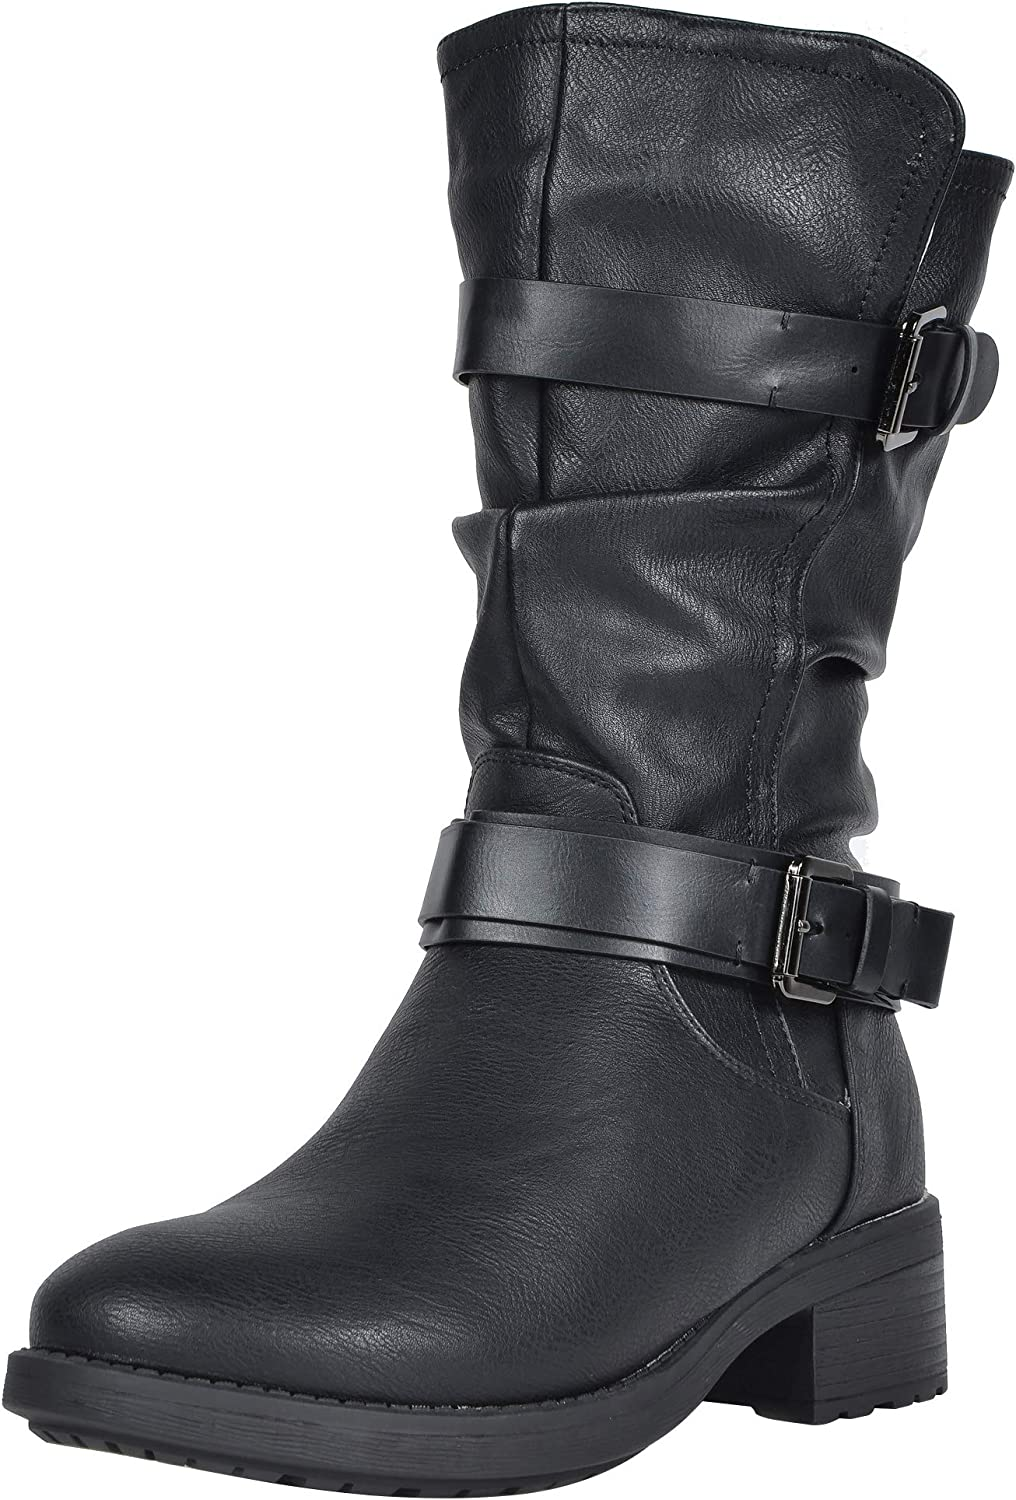 DREAM PAIRS Max 52% OFF Women's OFFicial mail order Faux Fur Mid Winter Riding Boots Calf